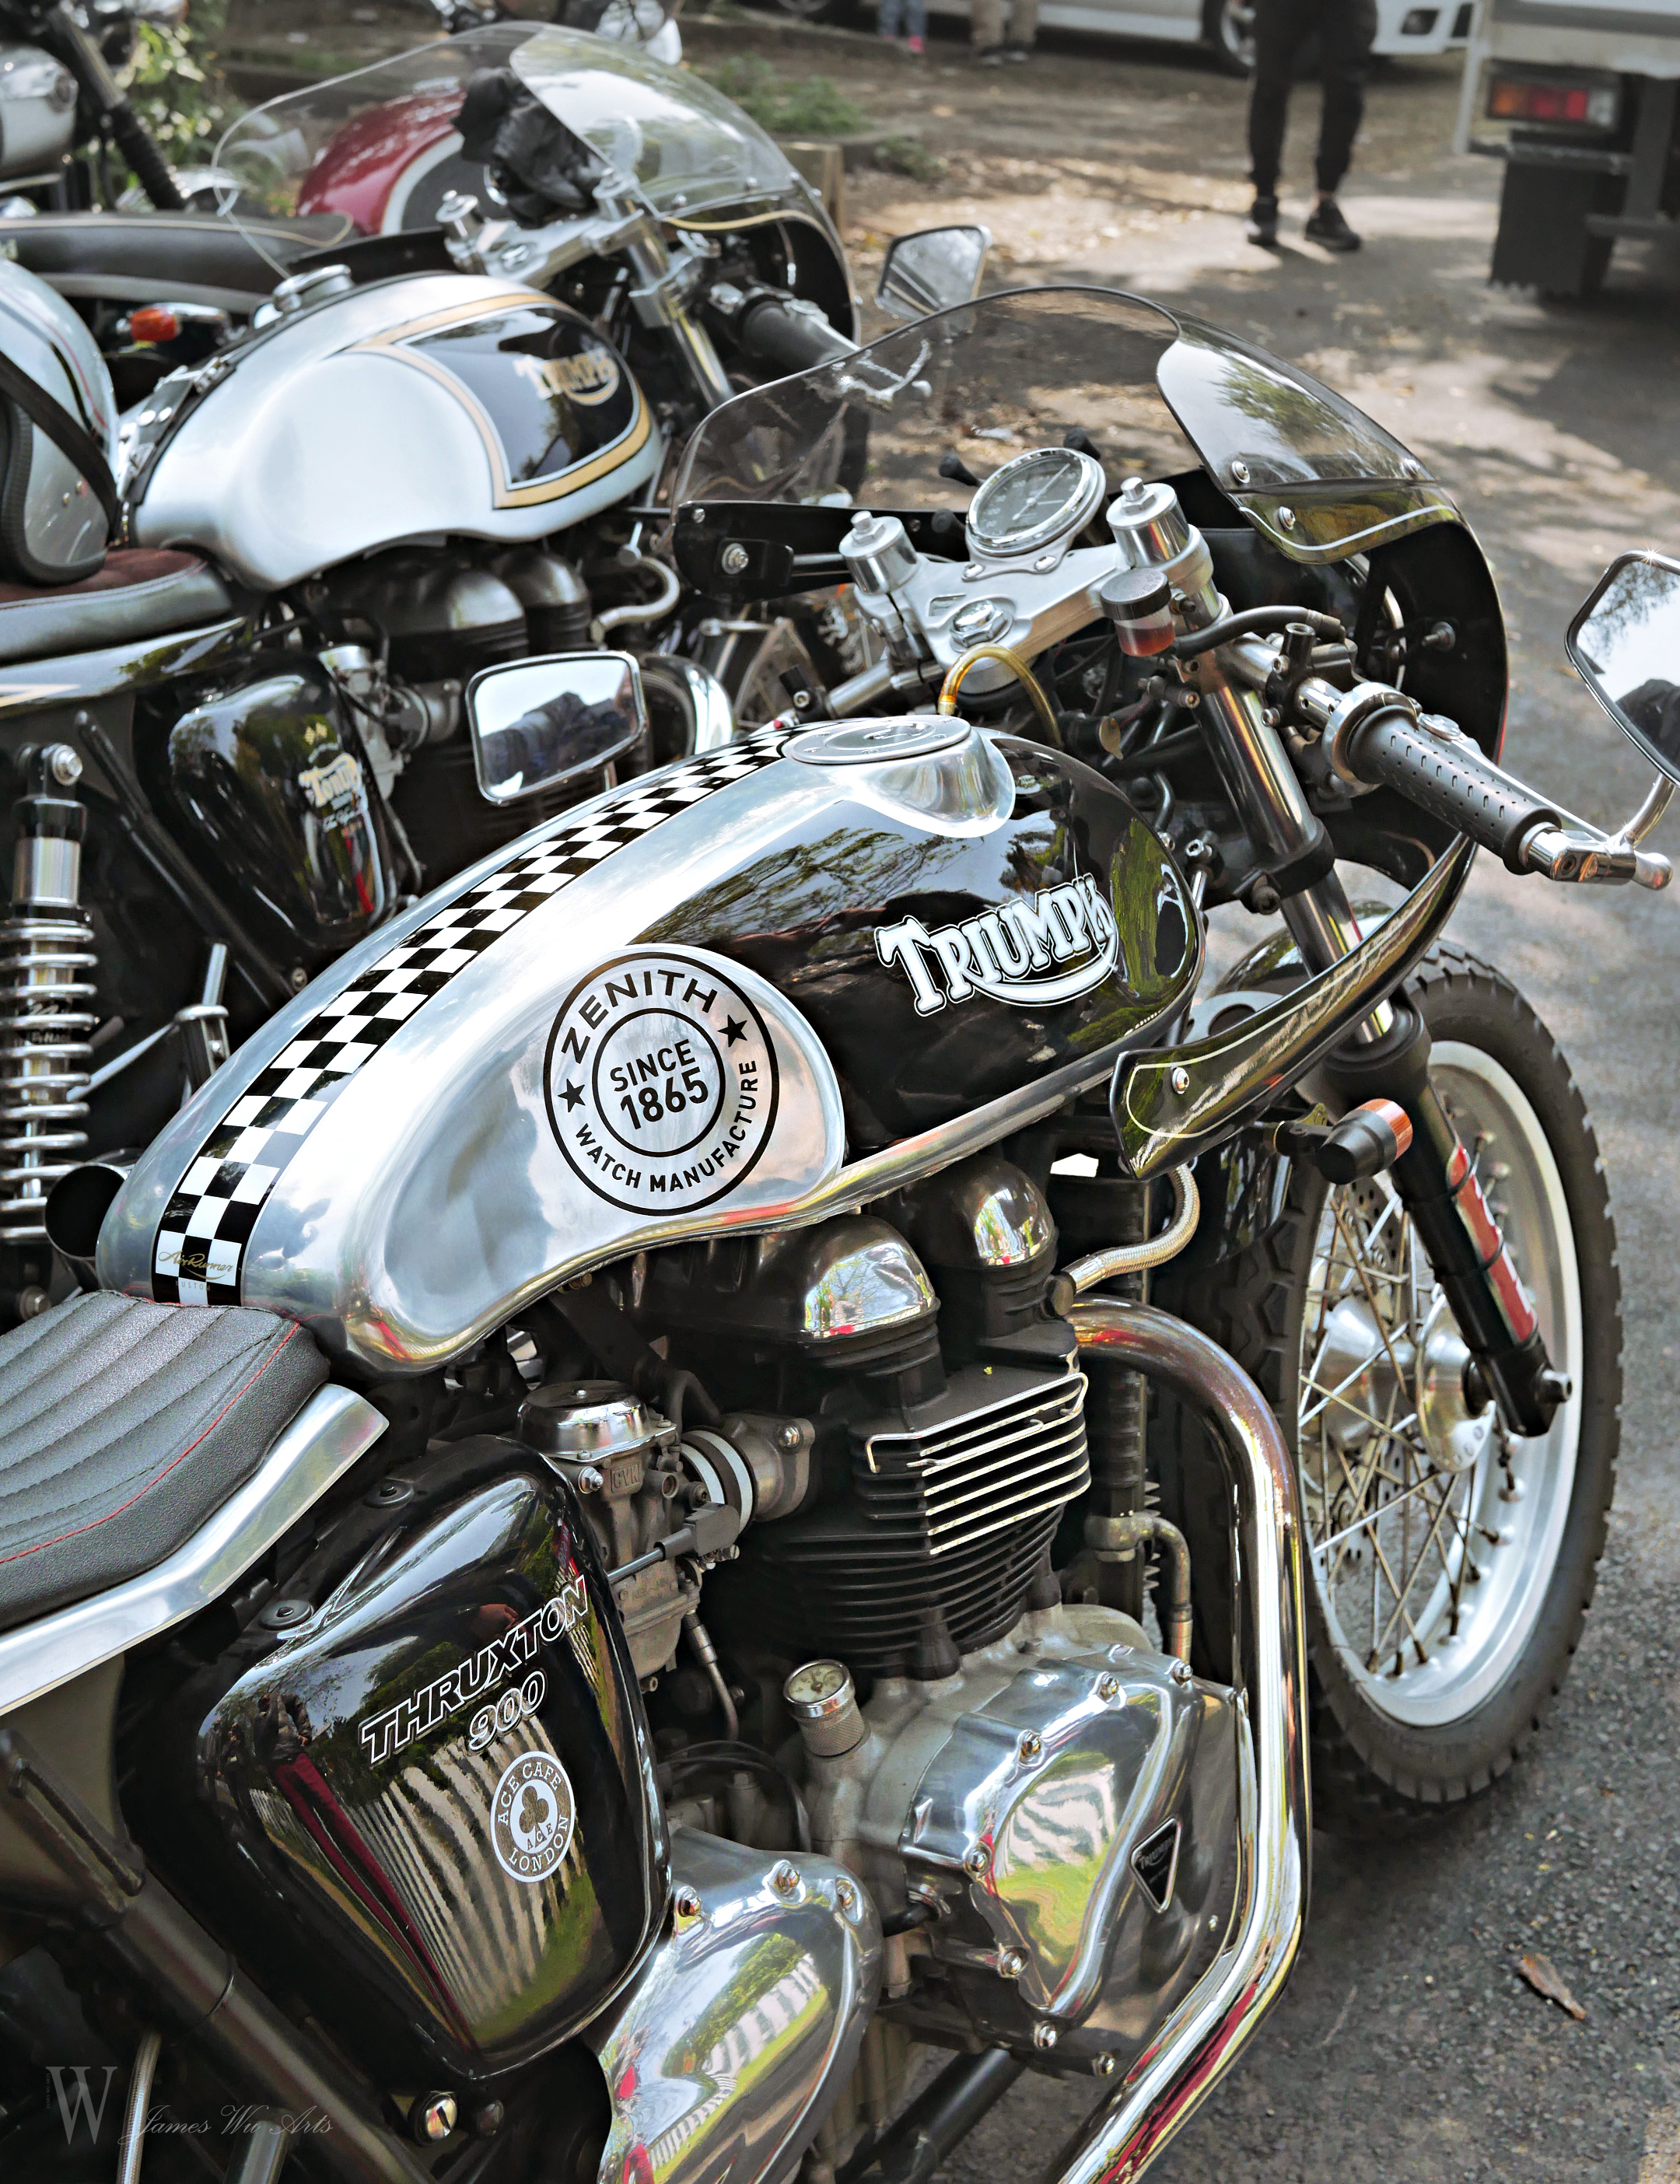 TONUP ROCKERS CAFE RACER (79)